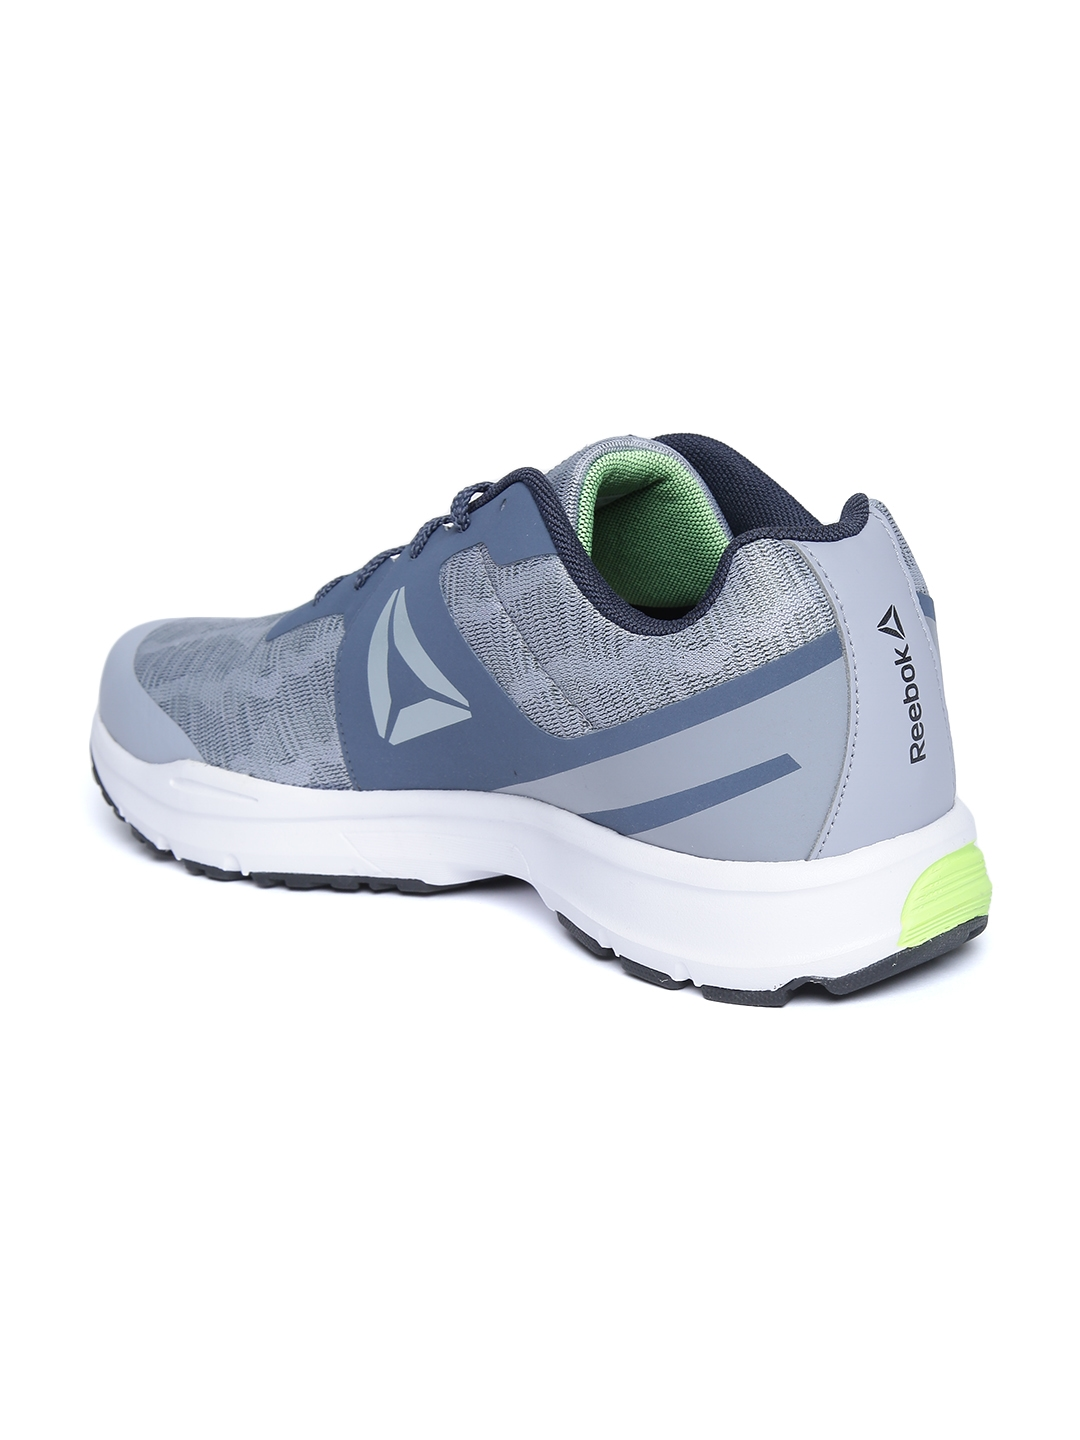 6fb4401cc4e72 Buy Reebok Men Grey Accord LP Running Shoes - Sports Shoes for Men ...